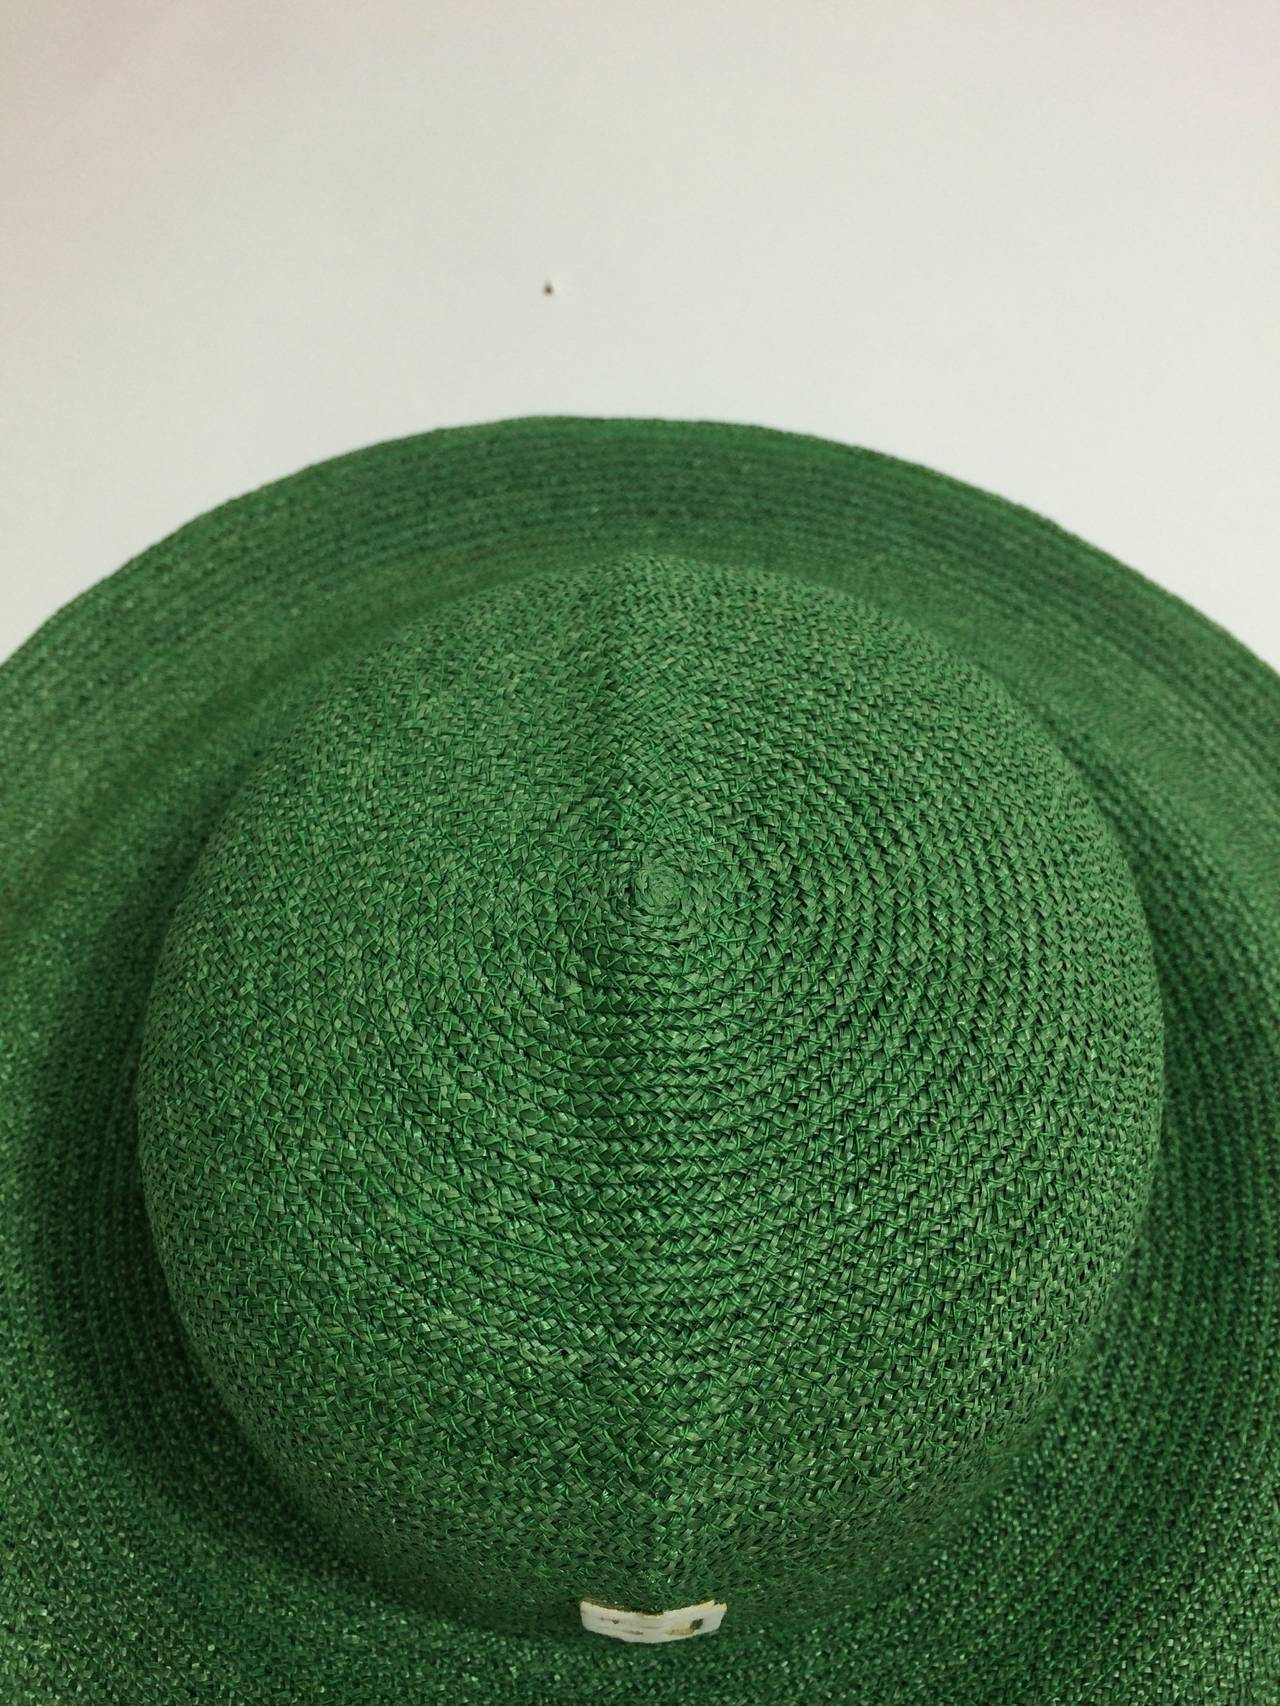 Vintage Pucci Green Sun Hat 3